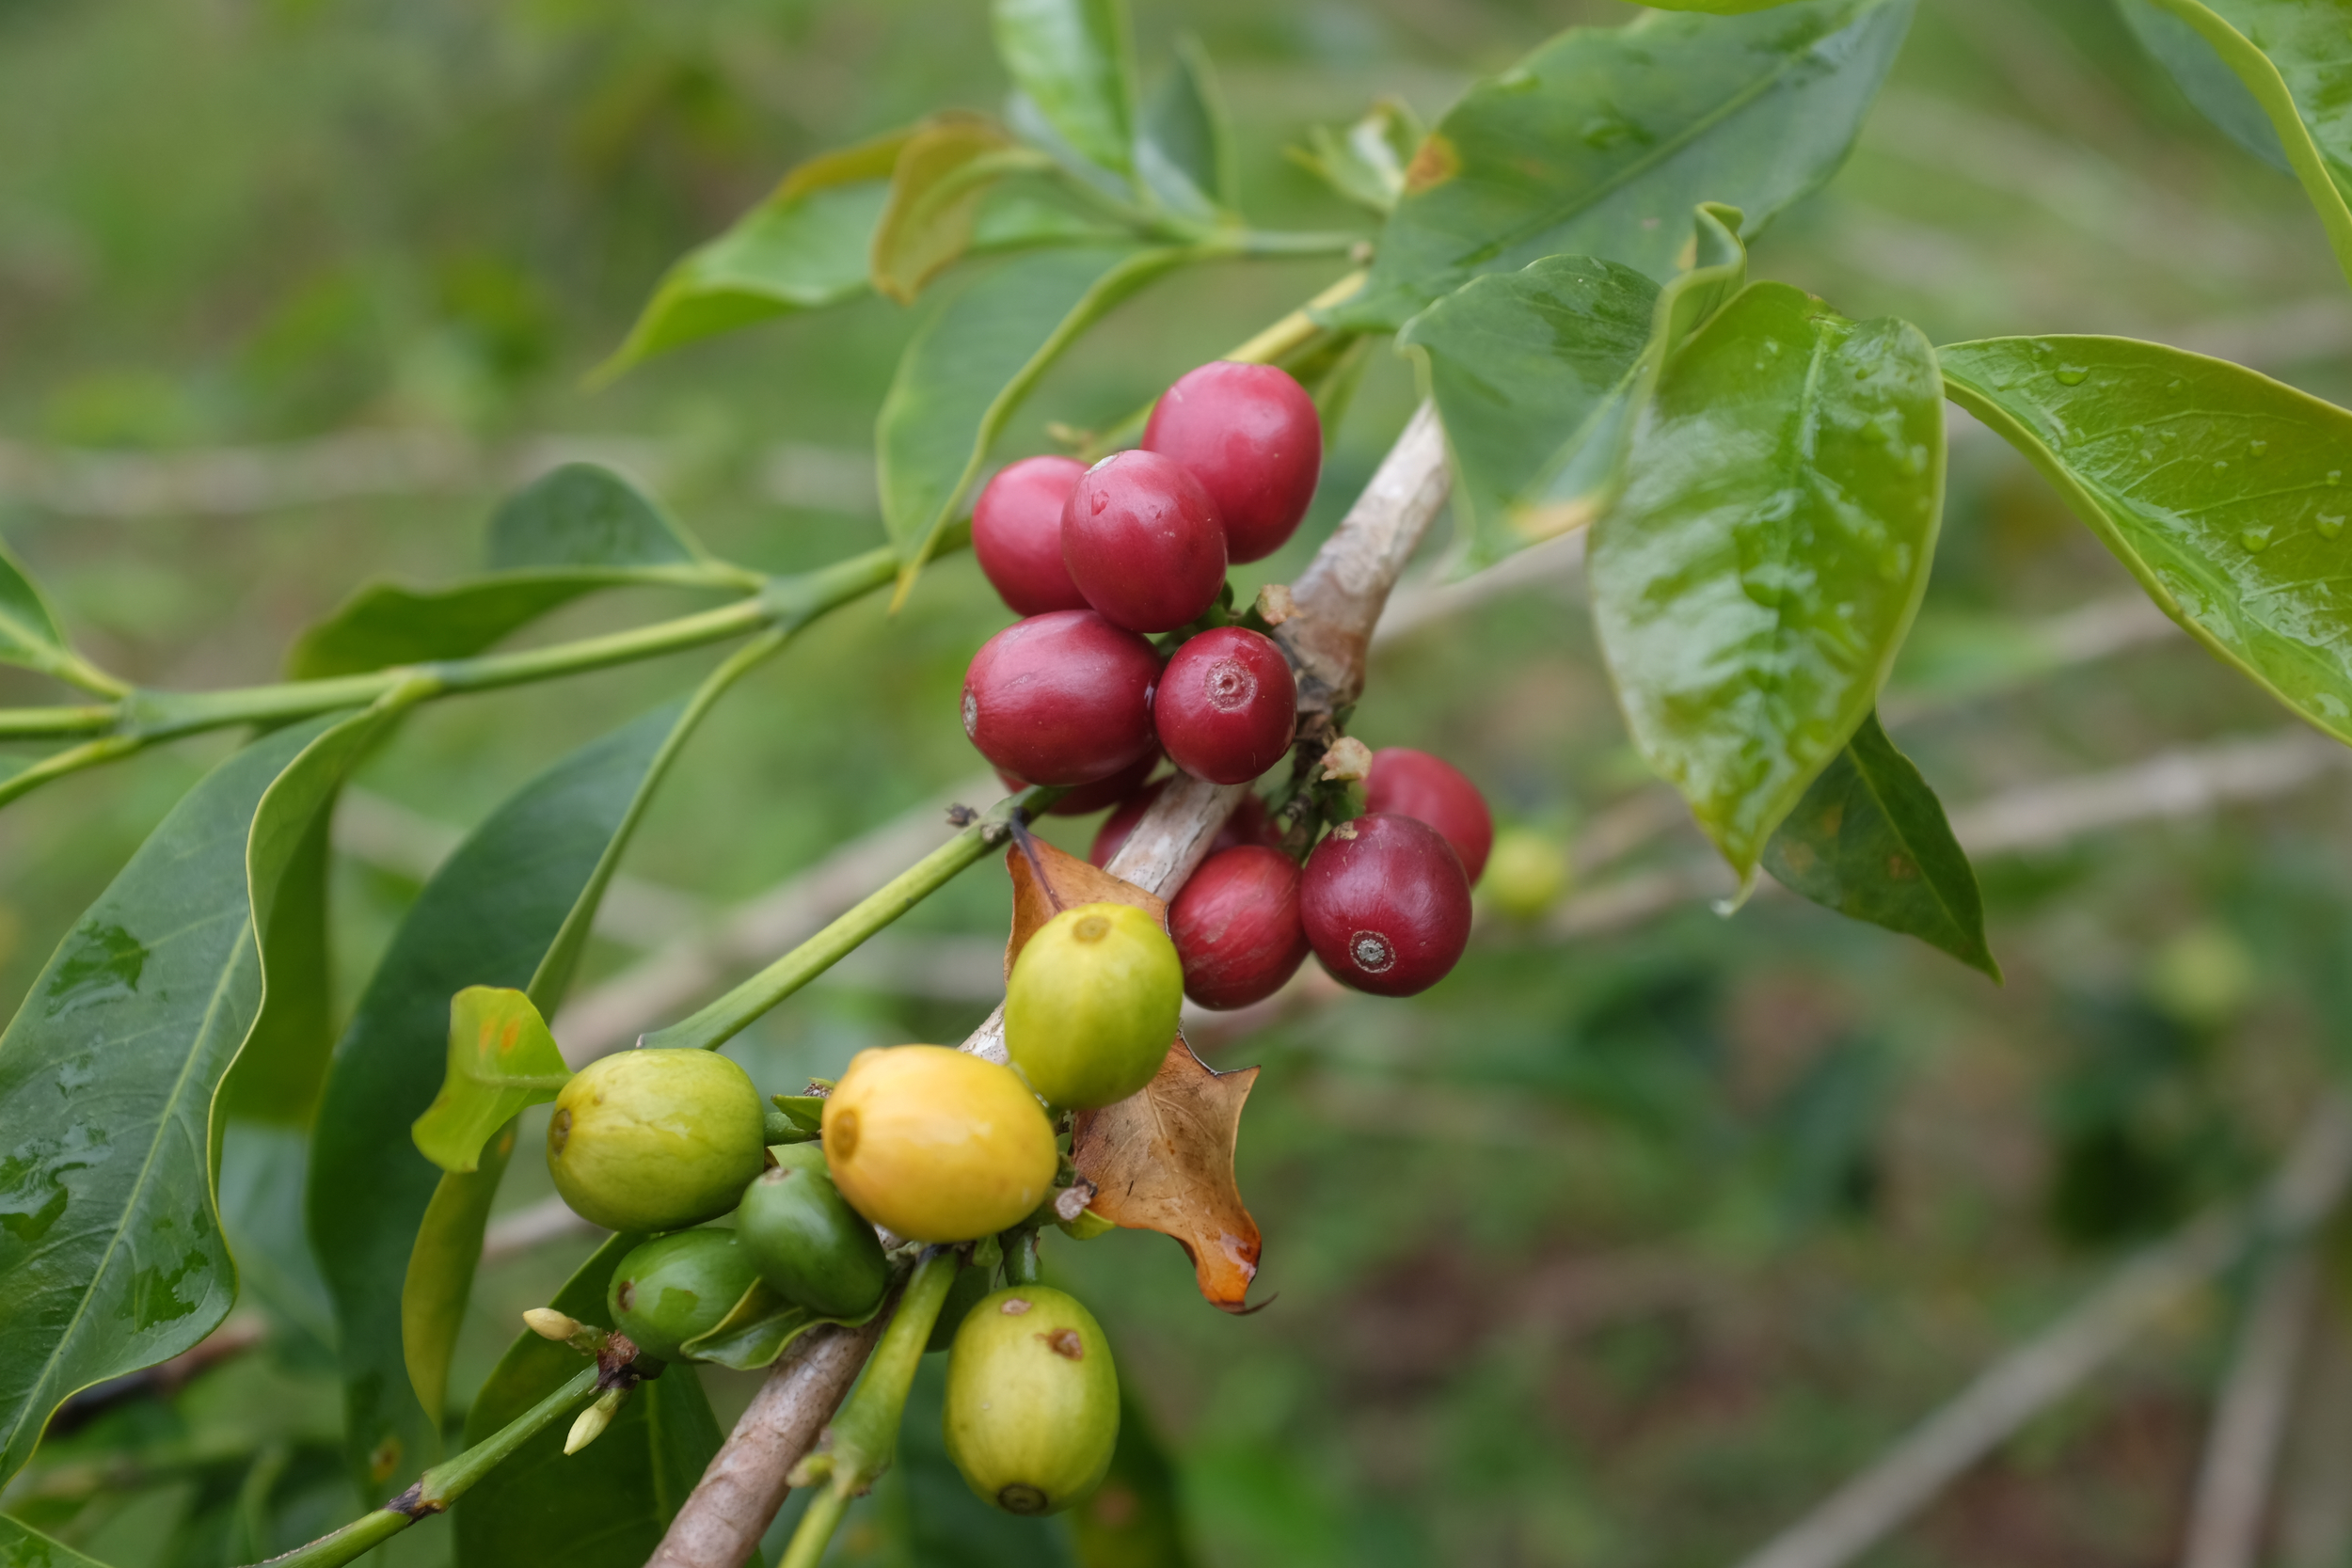 Coffee cherries at El Laurel, at varying degrees of ripeness.